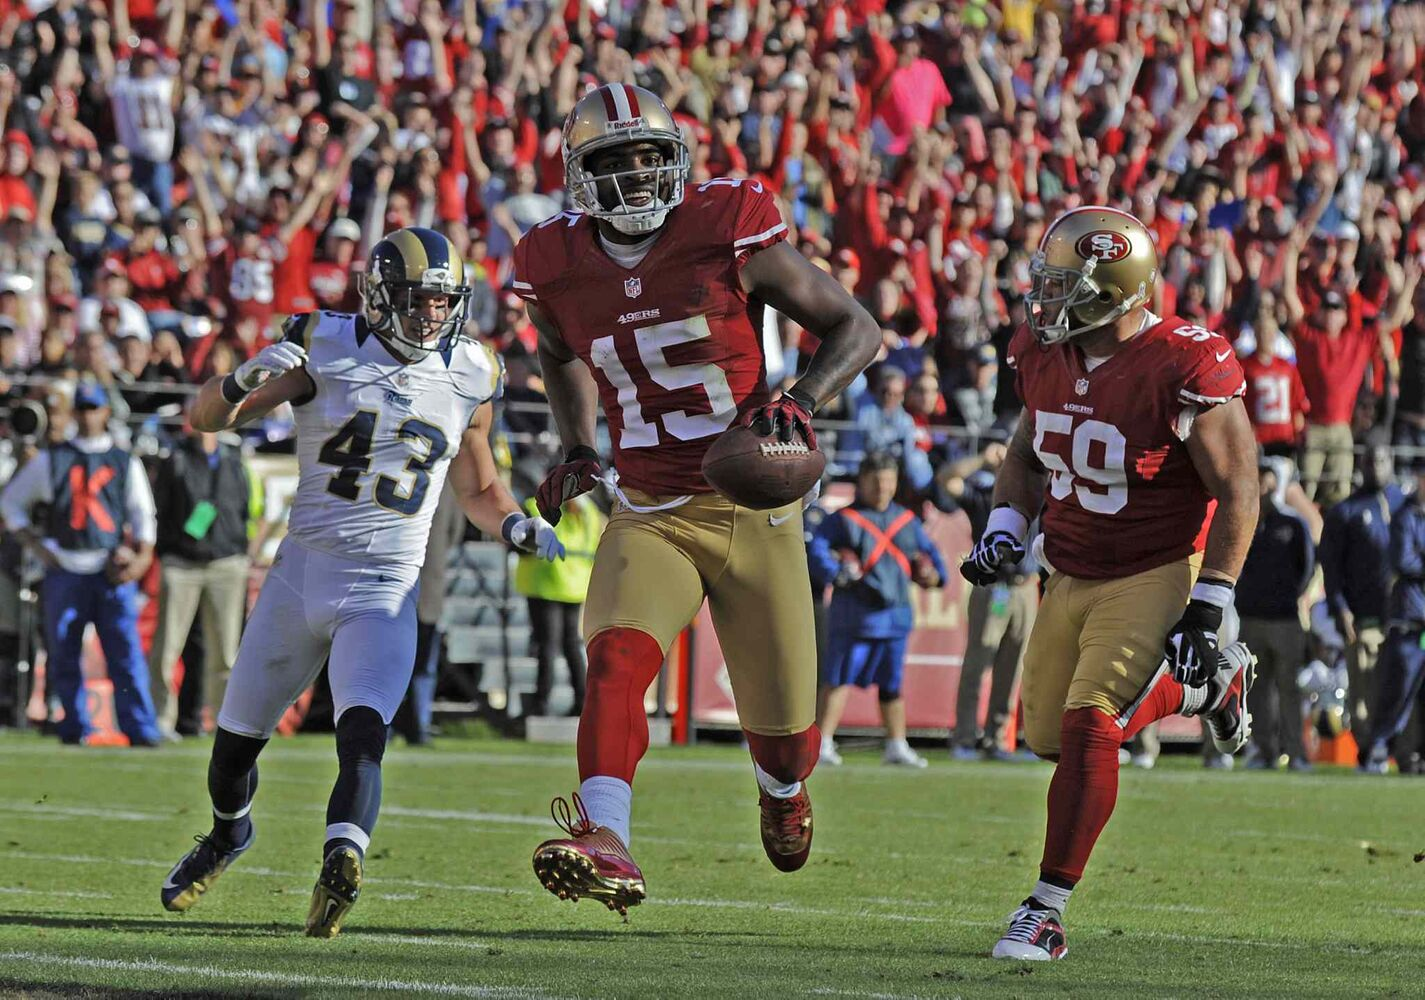 Michael Crabtree (15) of the San Francisco 49ers smiles as he runs in for a touchdown against the St. Louis Rams in the second quarter of their game at Candlestick Park in November 2012.